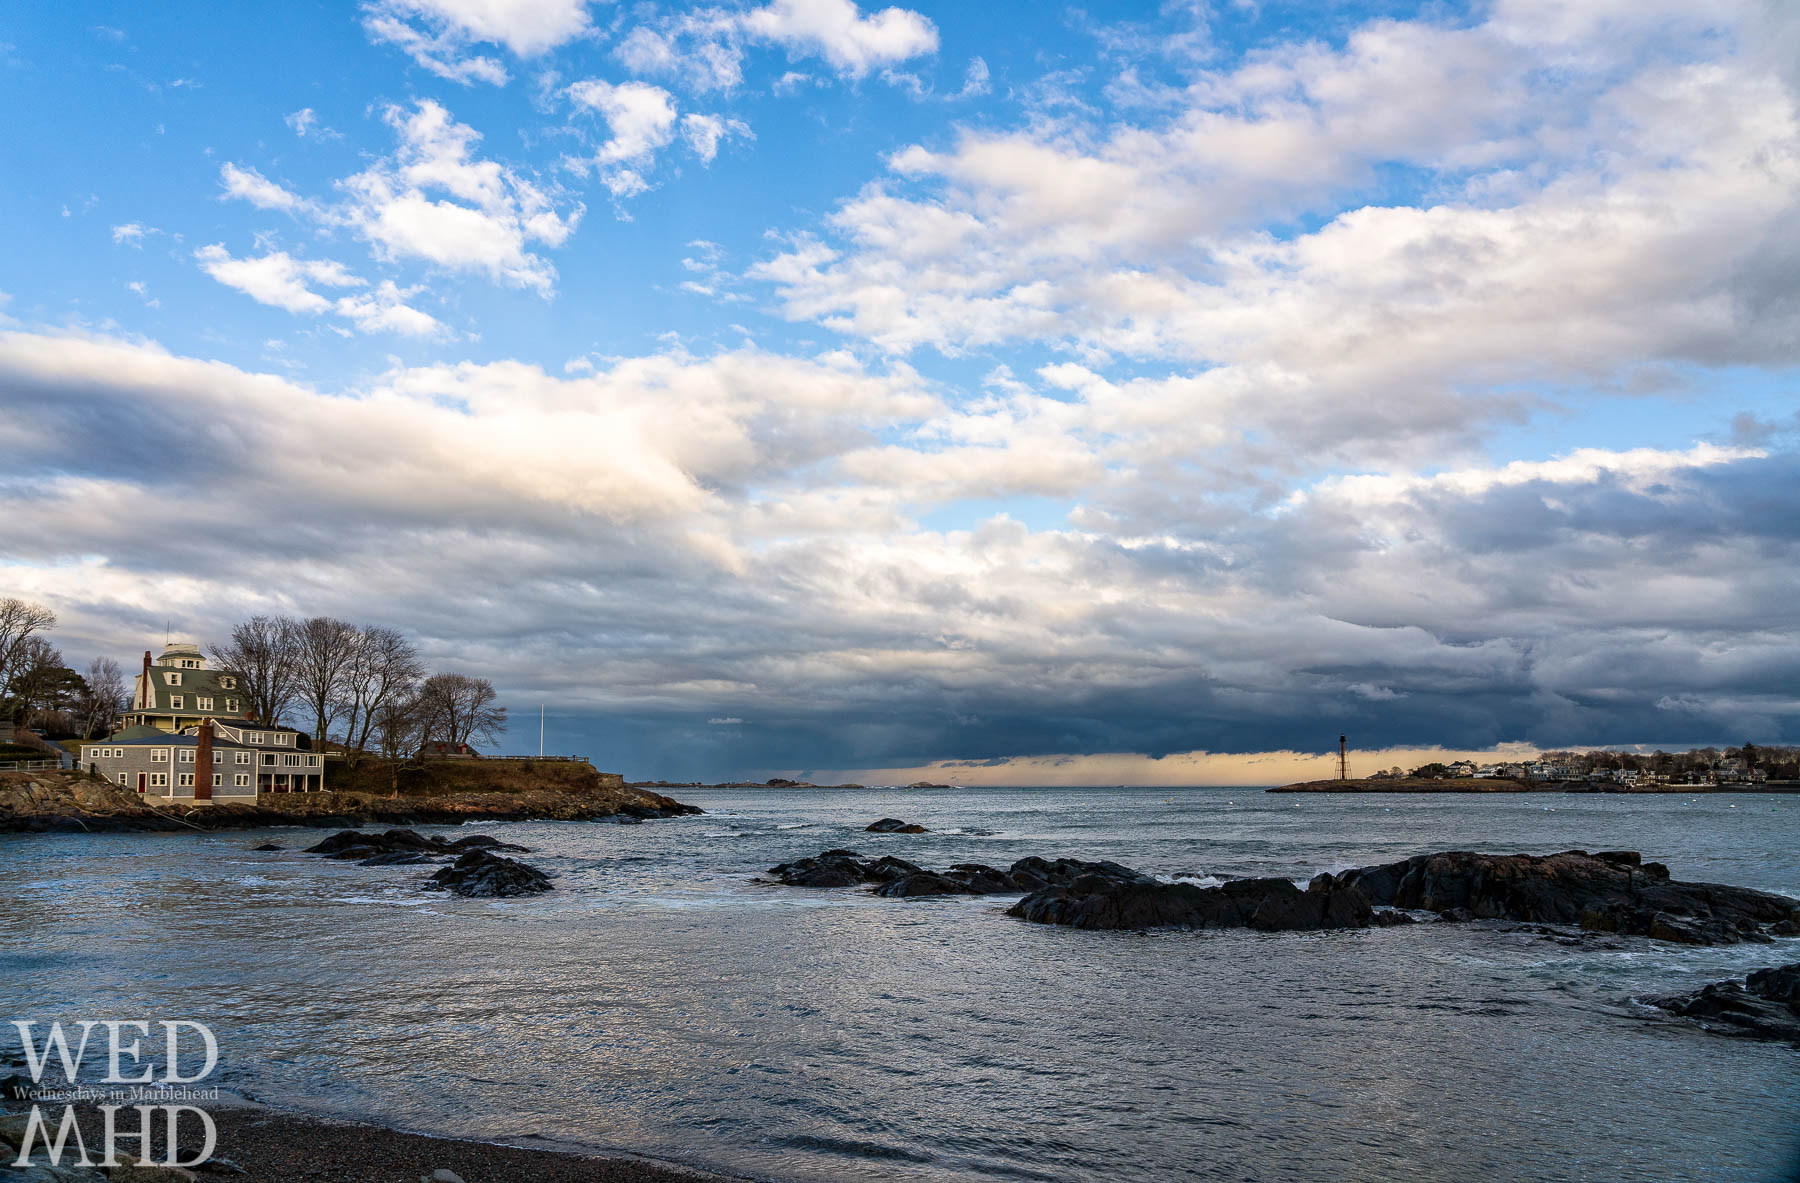 An expansive view from Fort Beach no longer includes the Great Tree at Fort Sewall which is now gone but not forgotten